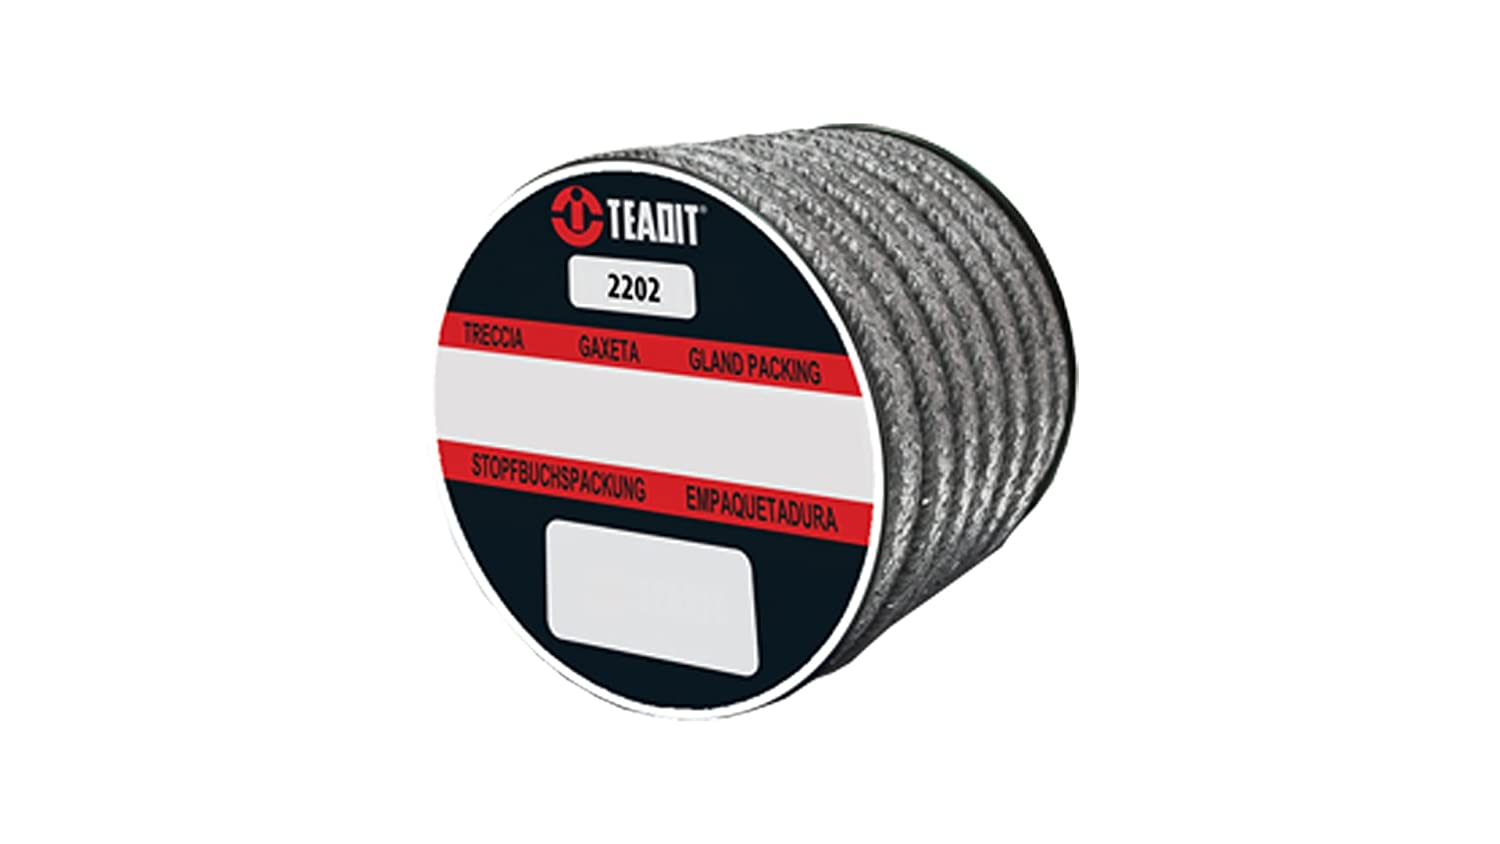 Sterling Seal and Supply 2202.562x10 Teadit Style 2202 Flexible Graphite with Carbon Corners Spool STCC Spool 9//16 CS x 10 lb 9//16 CS x 10 lb